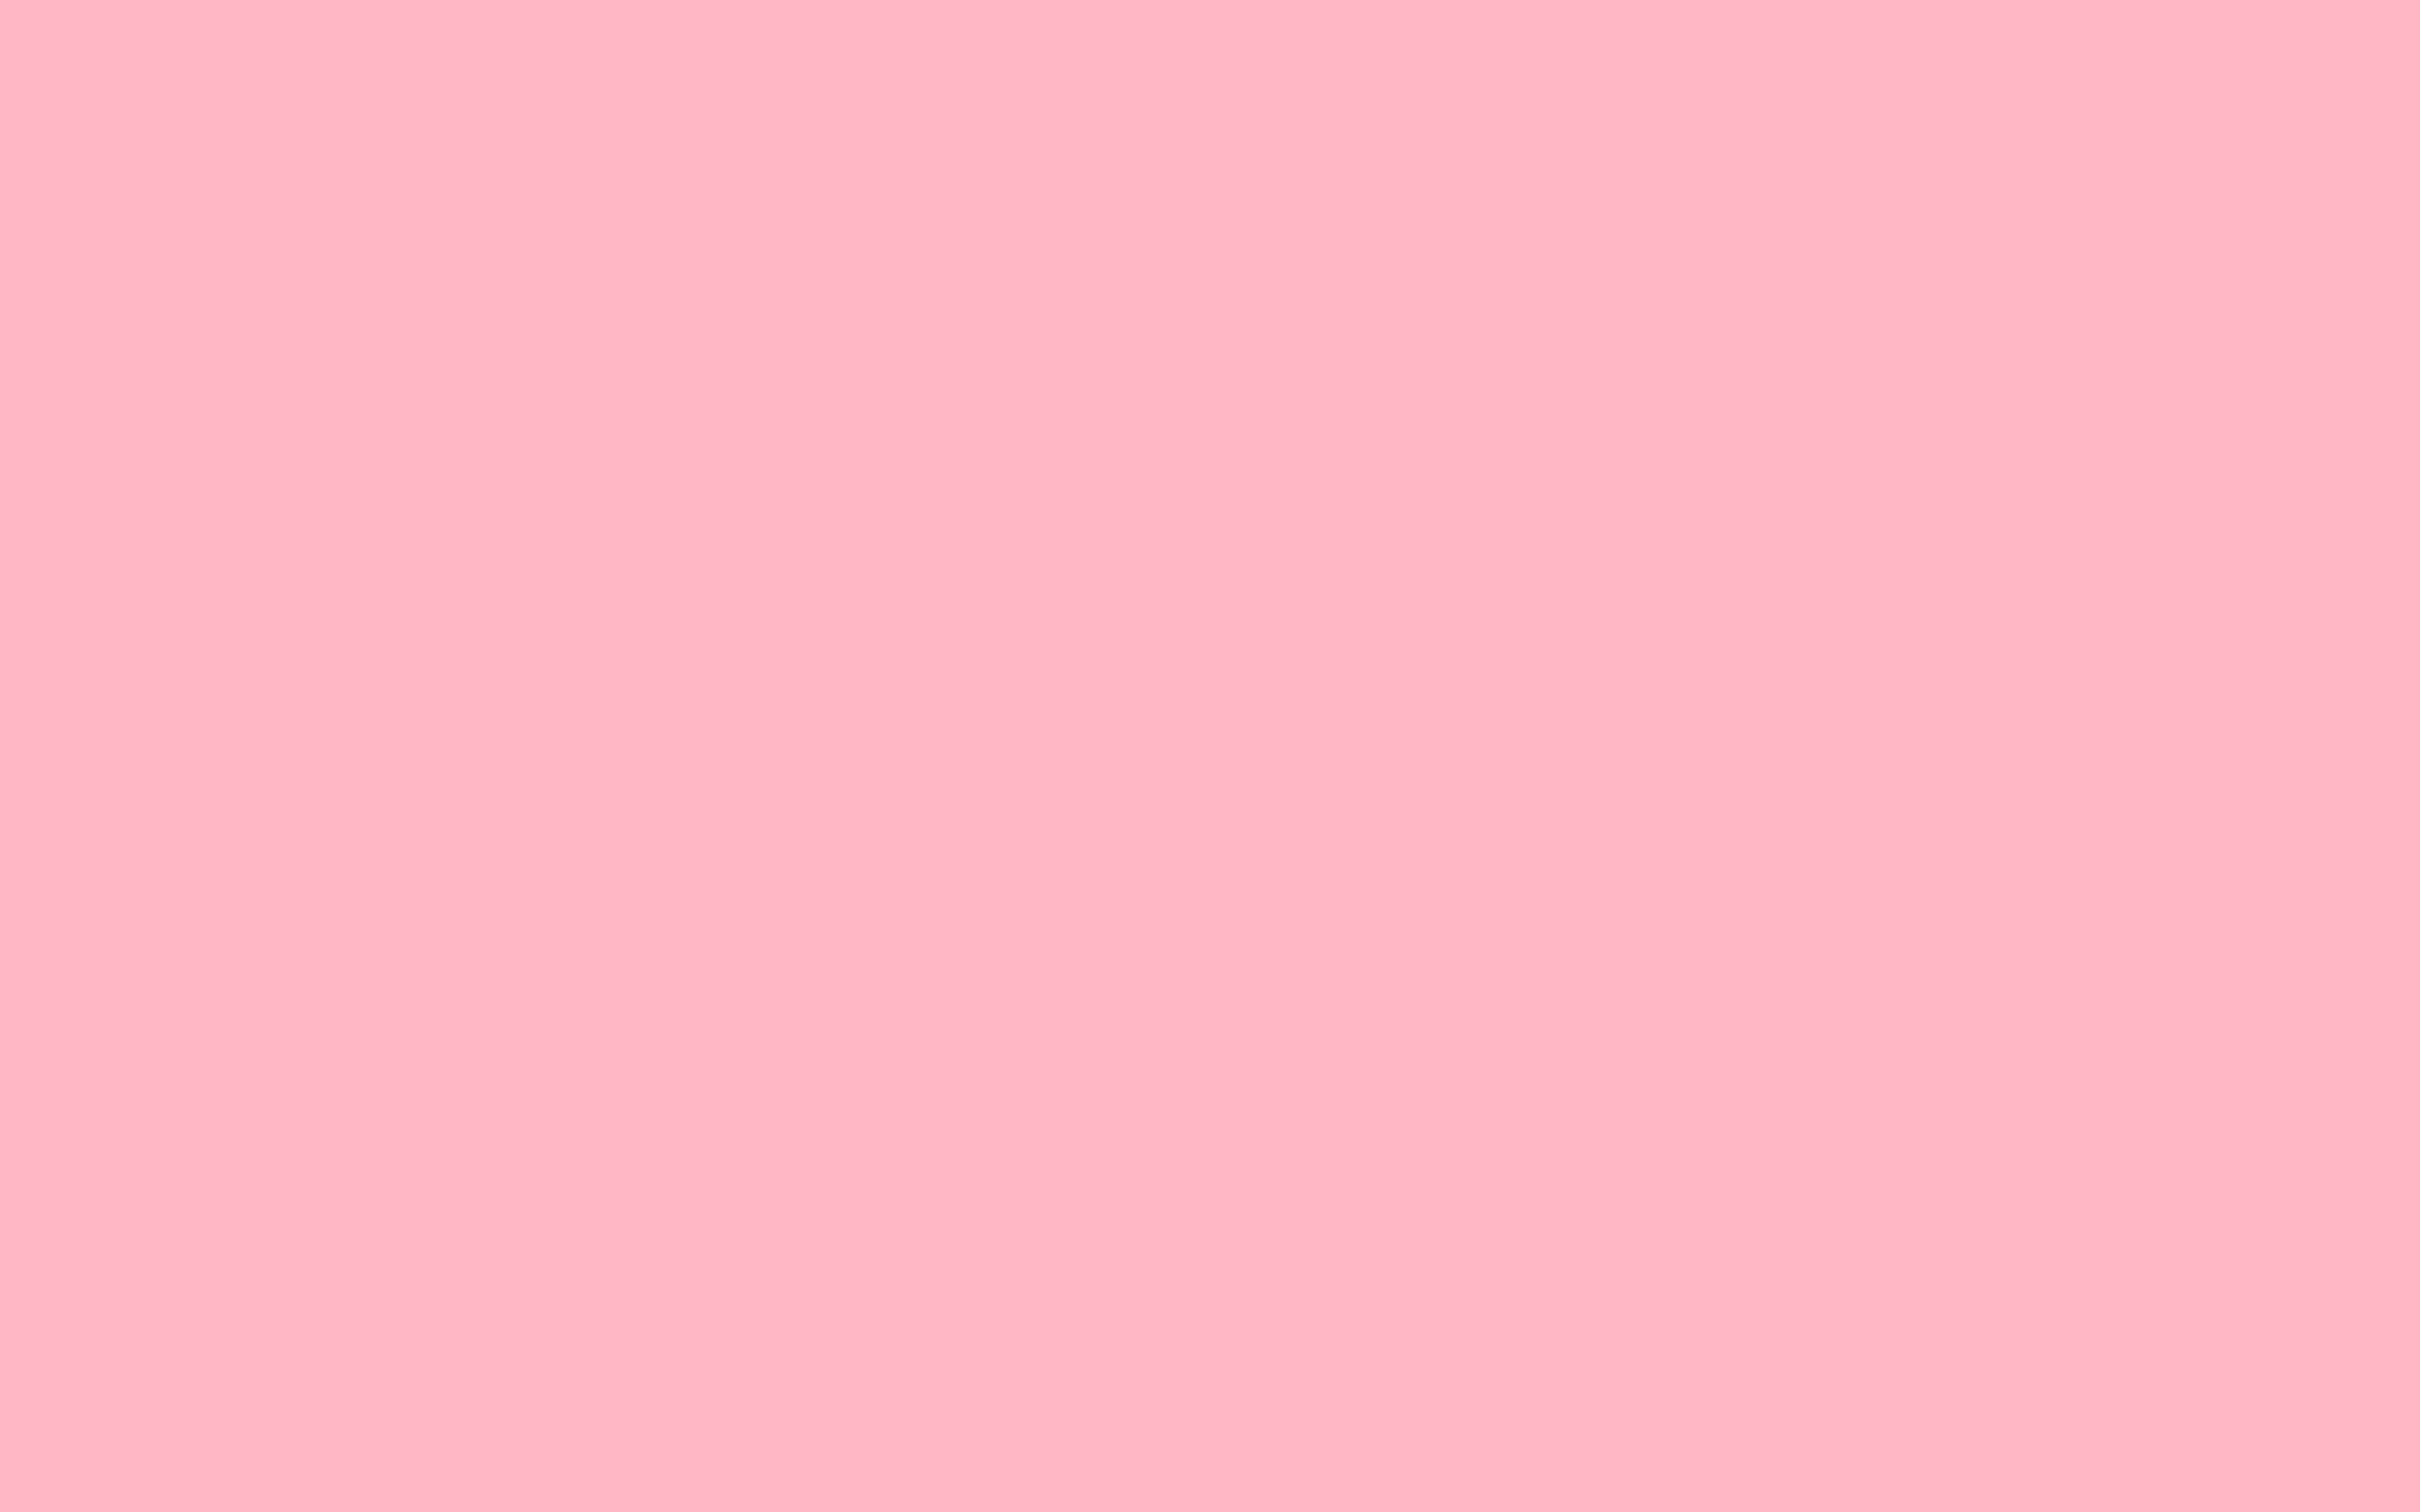 2560x1600 Cherry Blossom Pink Solid Color Background